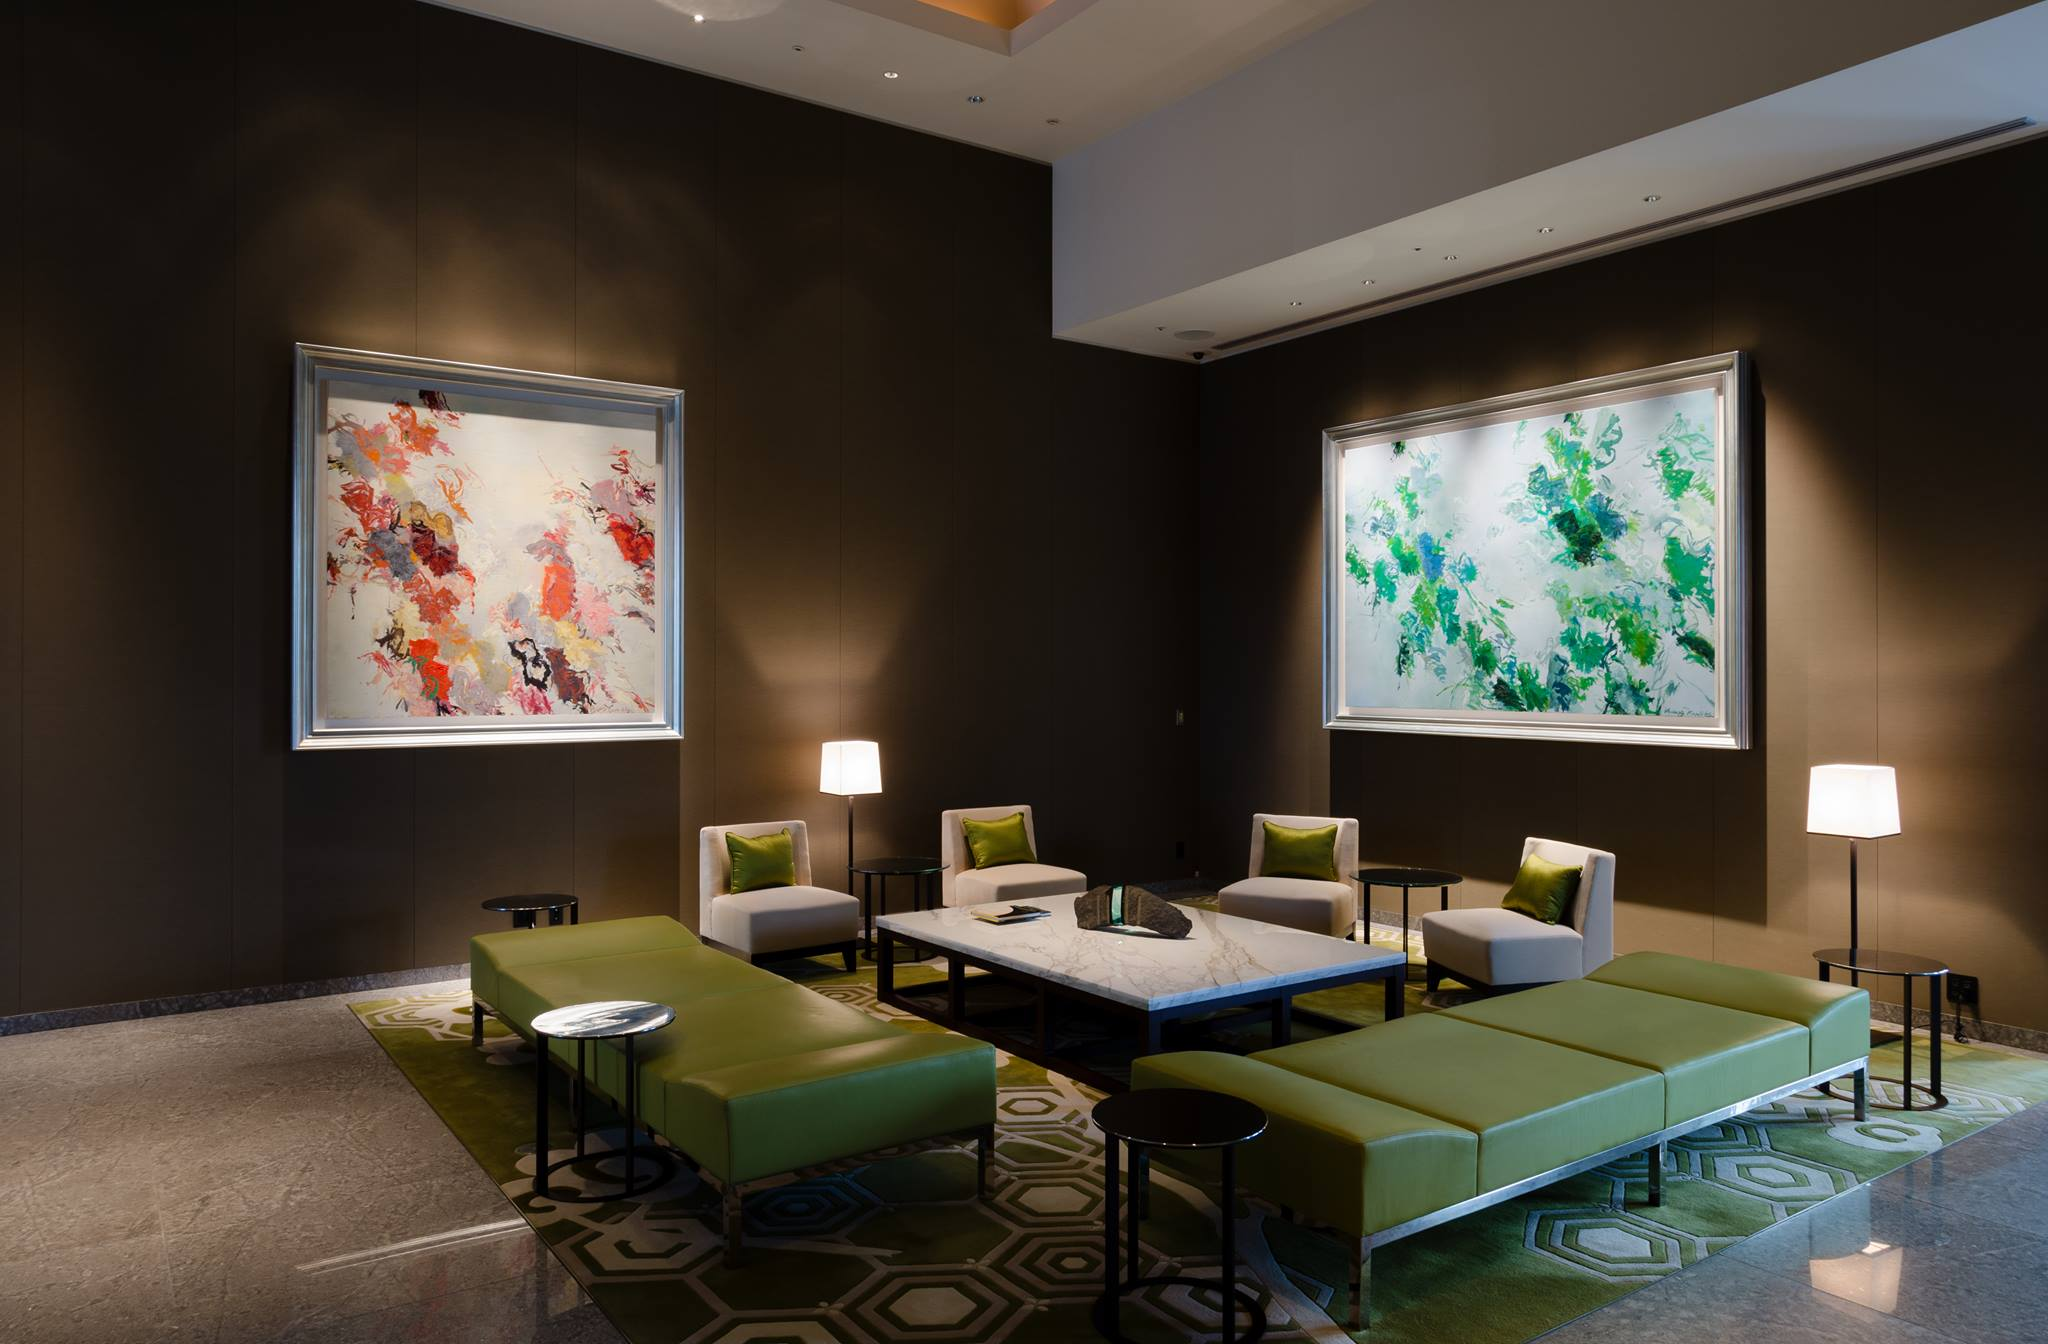 These two pieces in the Reception lobby are by Huang Yuan Qing. In this constantly changing natural world, Huang's paintings are a testament to the fusion of our evolution with nature rather than presenting scenery.